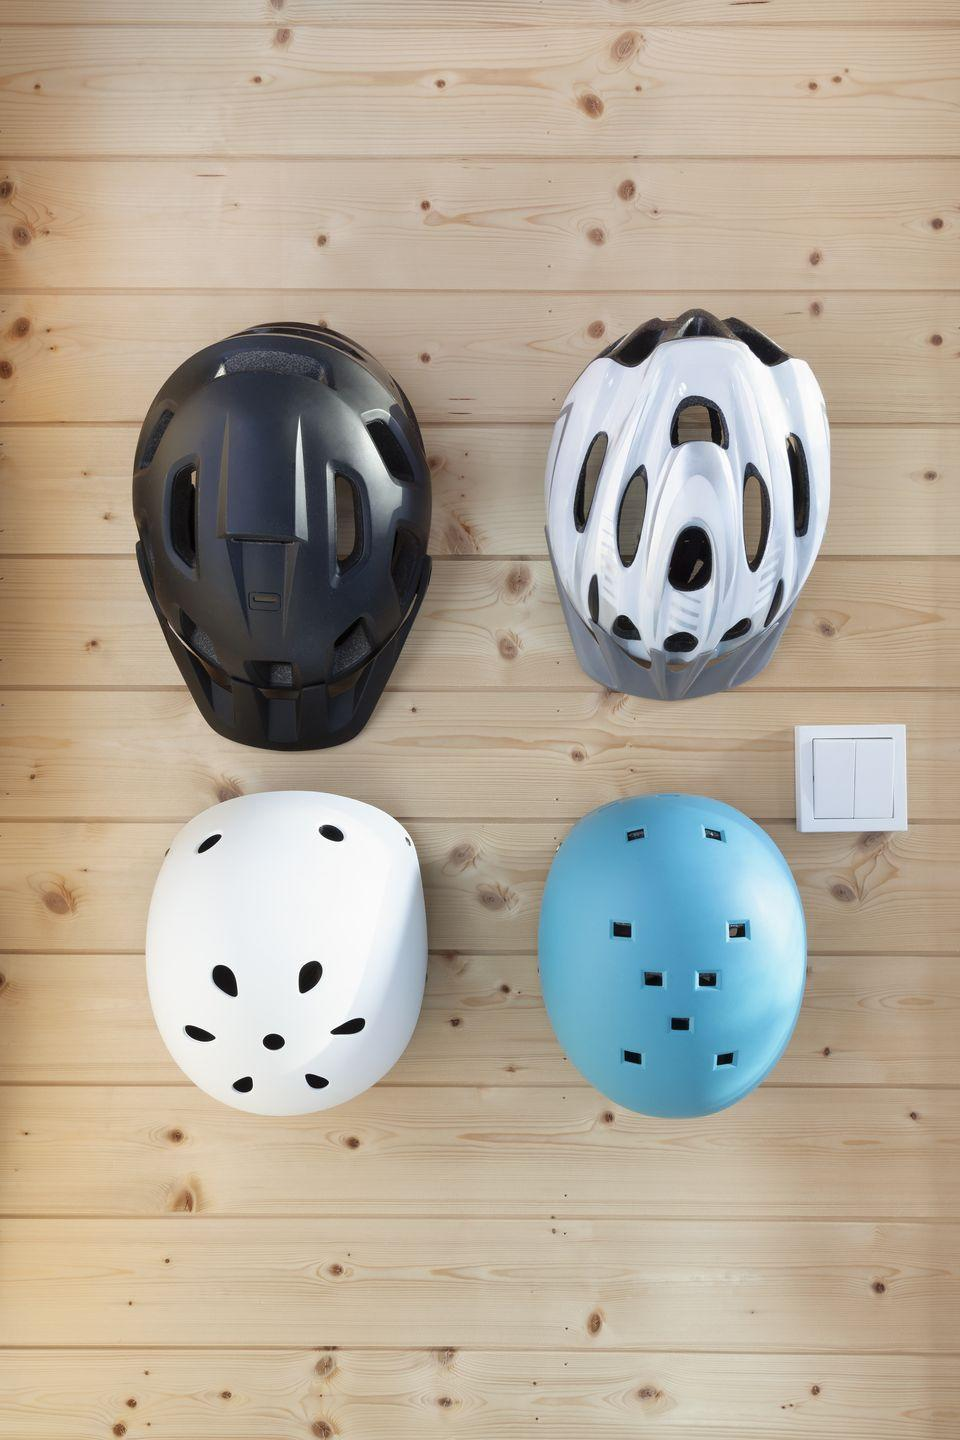 """<p>It's essential to wear a helmet when riding a bike or motorized vehicle, but in order to keep up with safety standards, most experts <a href=""""https://off.road.cc/content/feature/when-should-you-replace-your-bicycle-helmet-1280"""" rel=""""nofollow noopener"""" target=""""_blank"""" data-ylk=""""slk:recommend replacing them"""" class=""""link rapid-noclick-resp"""">recommend replacing them</a> every three to five years. Even if you find what <em>appears</em> to be an unused helmet at a secondhand shop, there's no way of telling when it was made.</p>"""